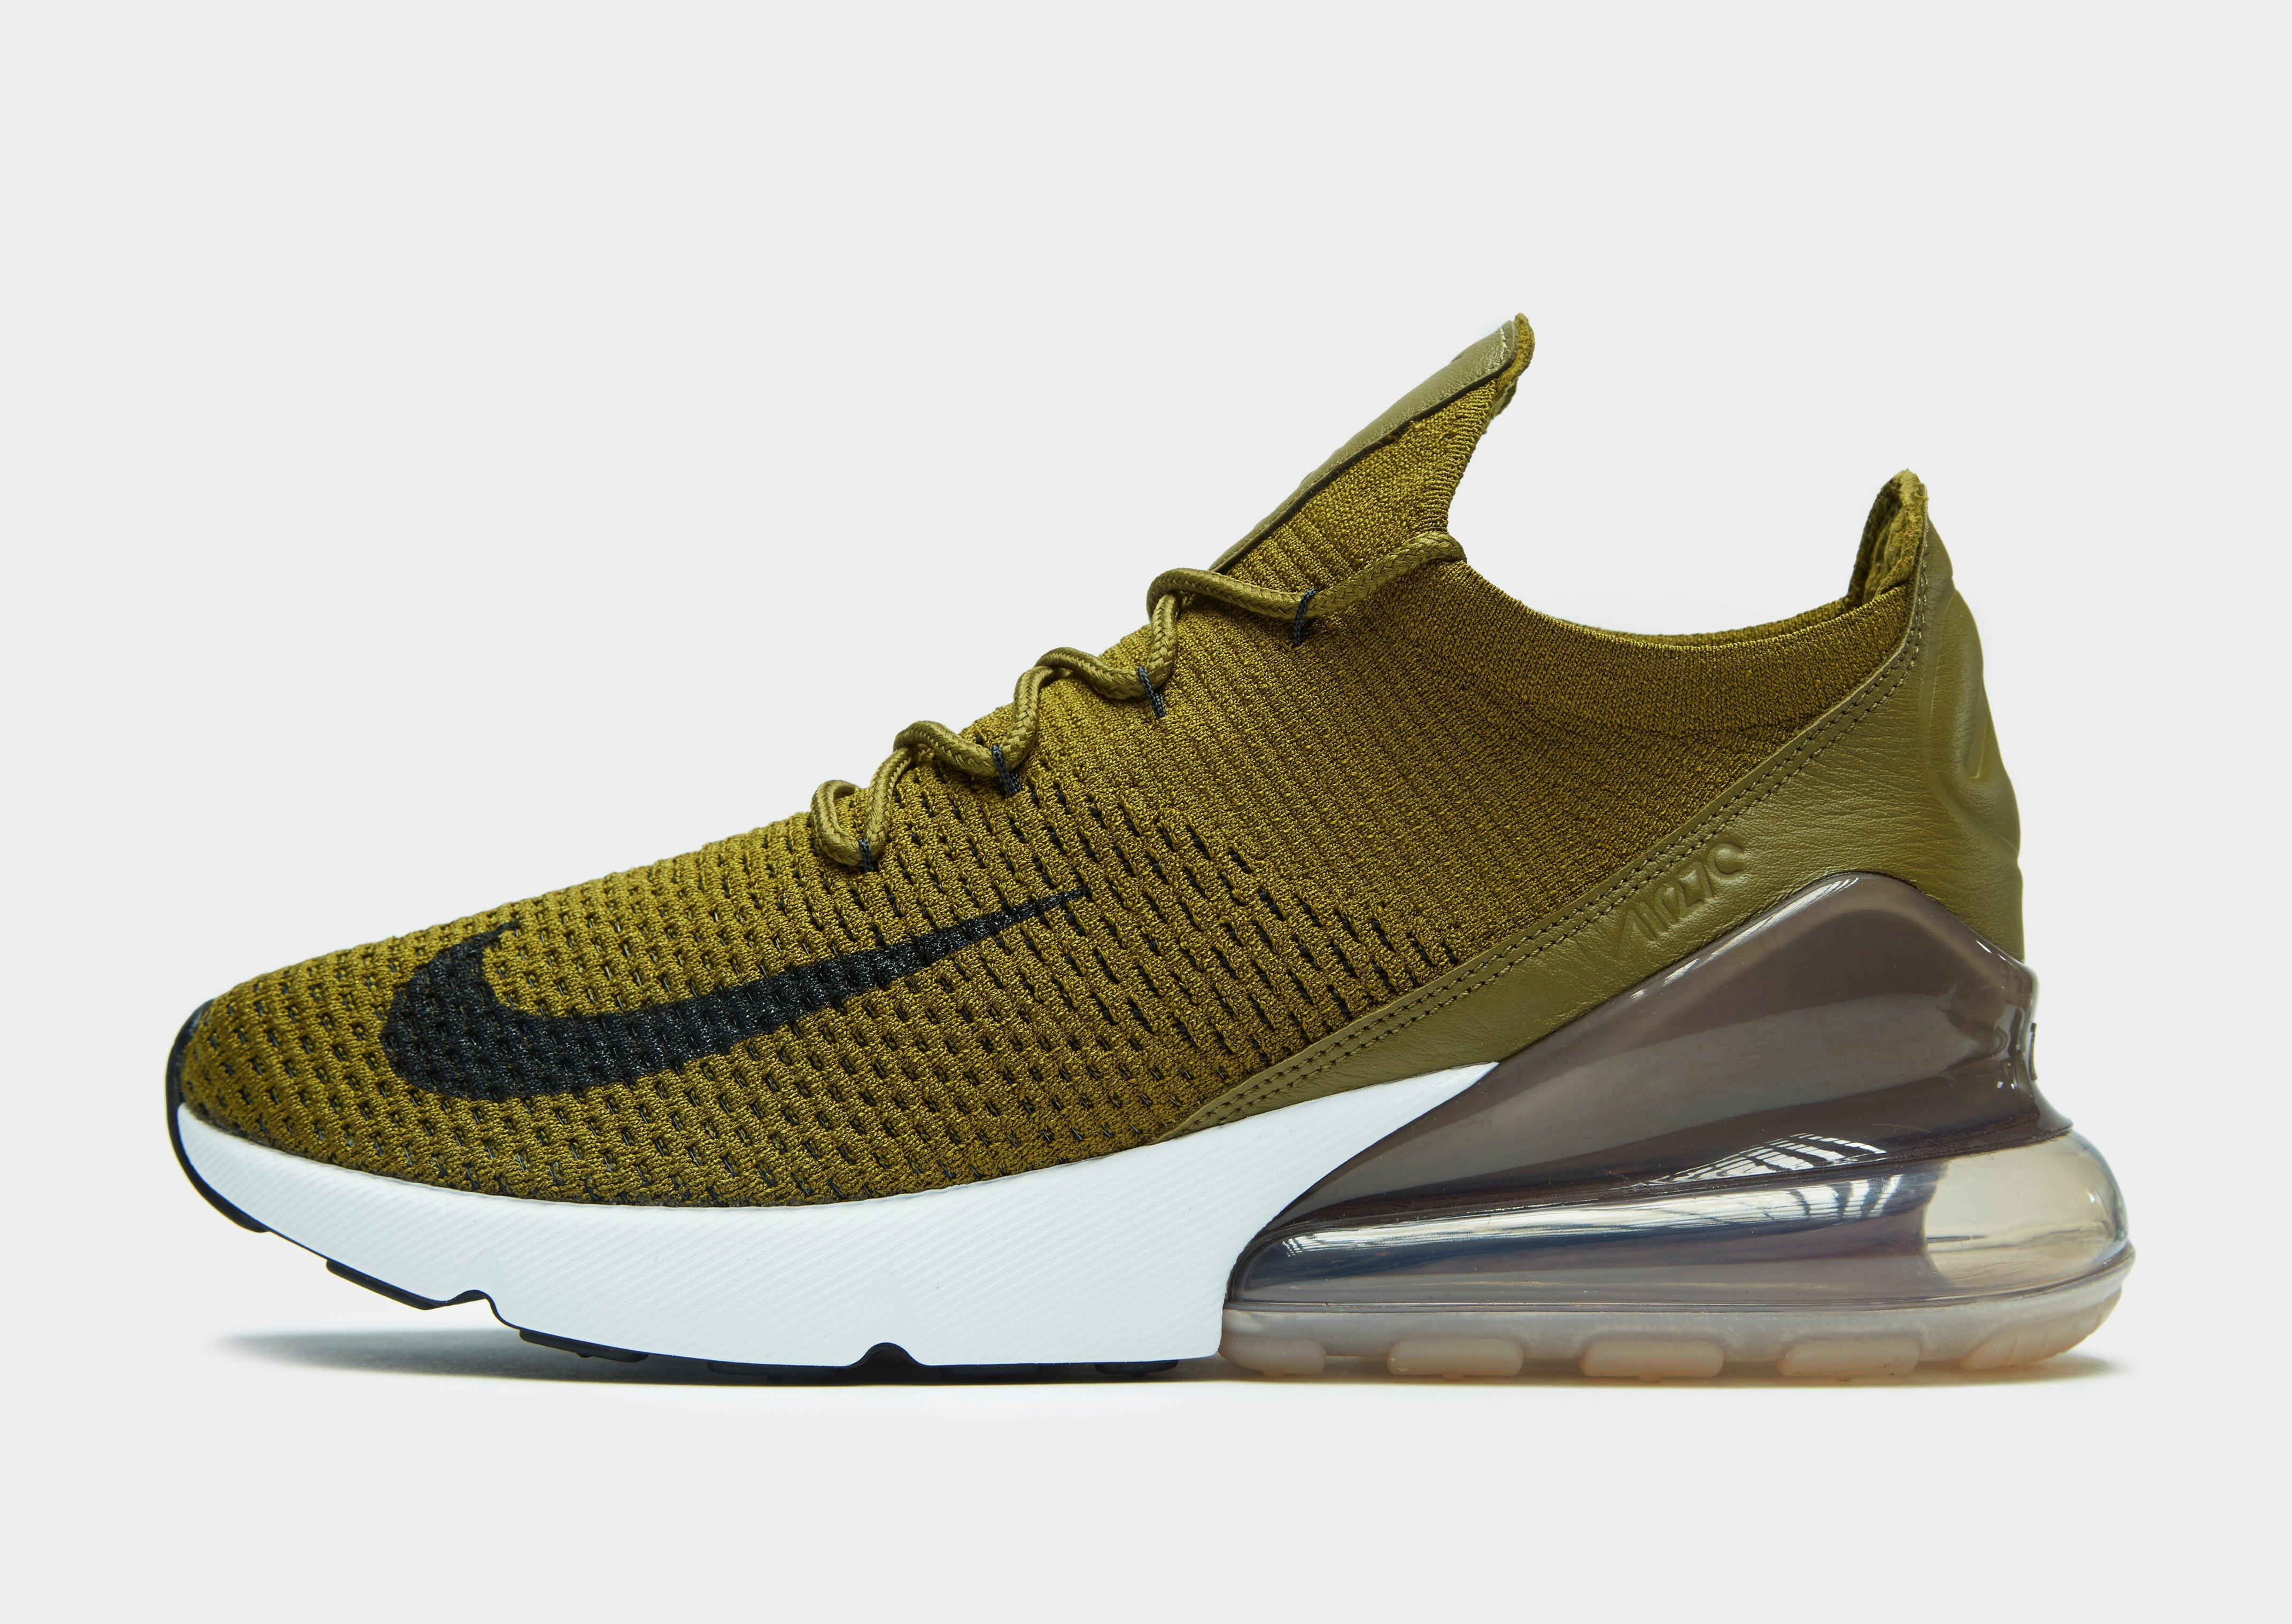 new concept 033a1 310c3 Nike Air Max 270 Flyknit in Green for Men - Lyst